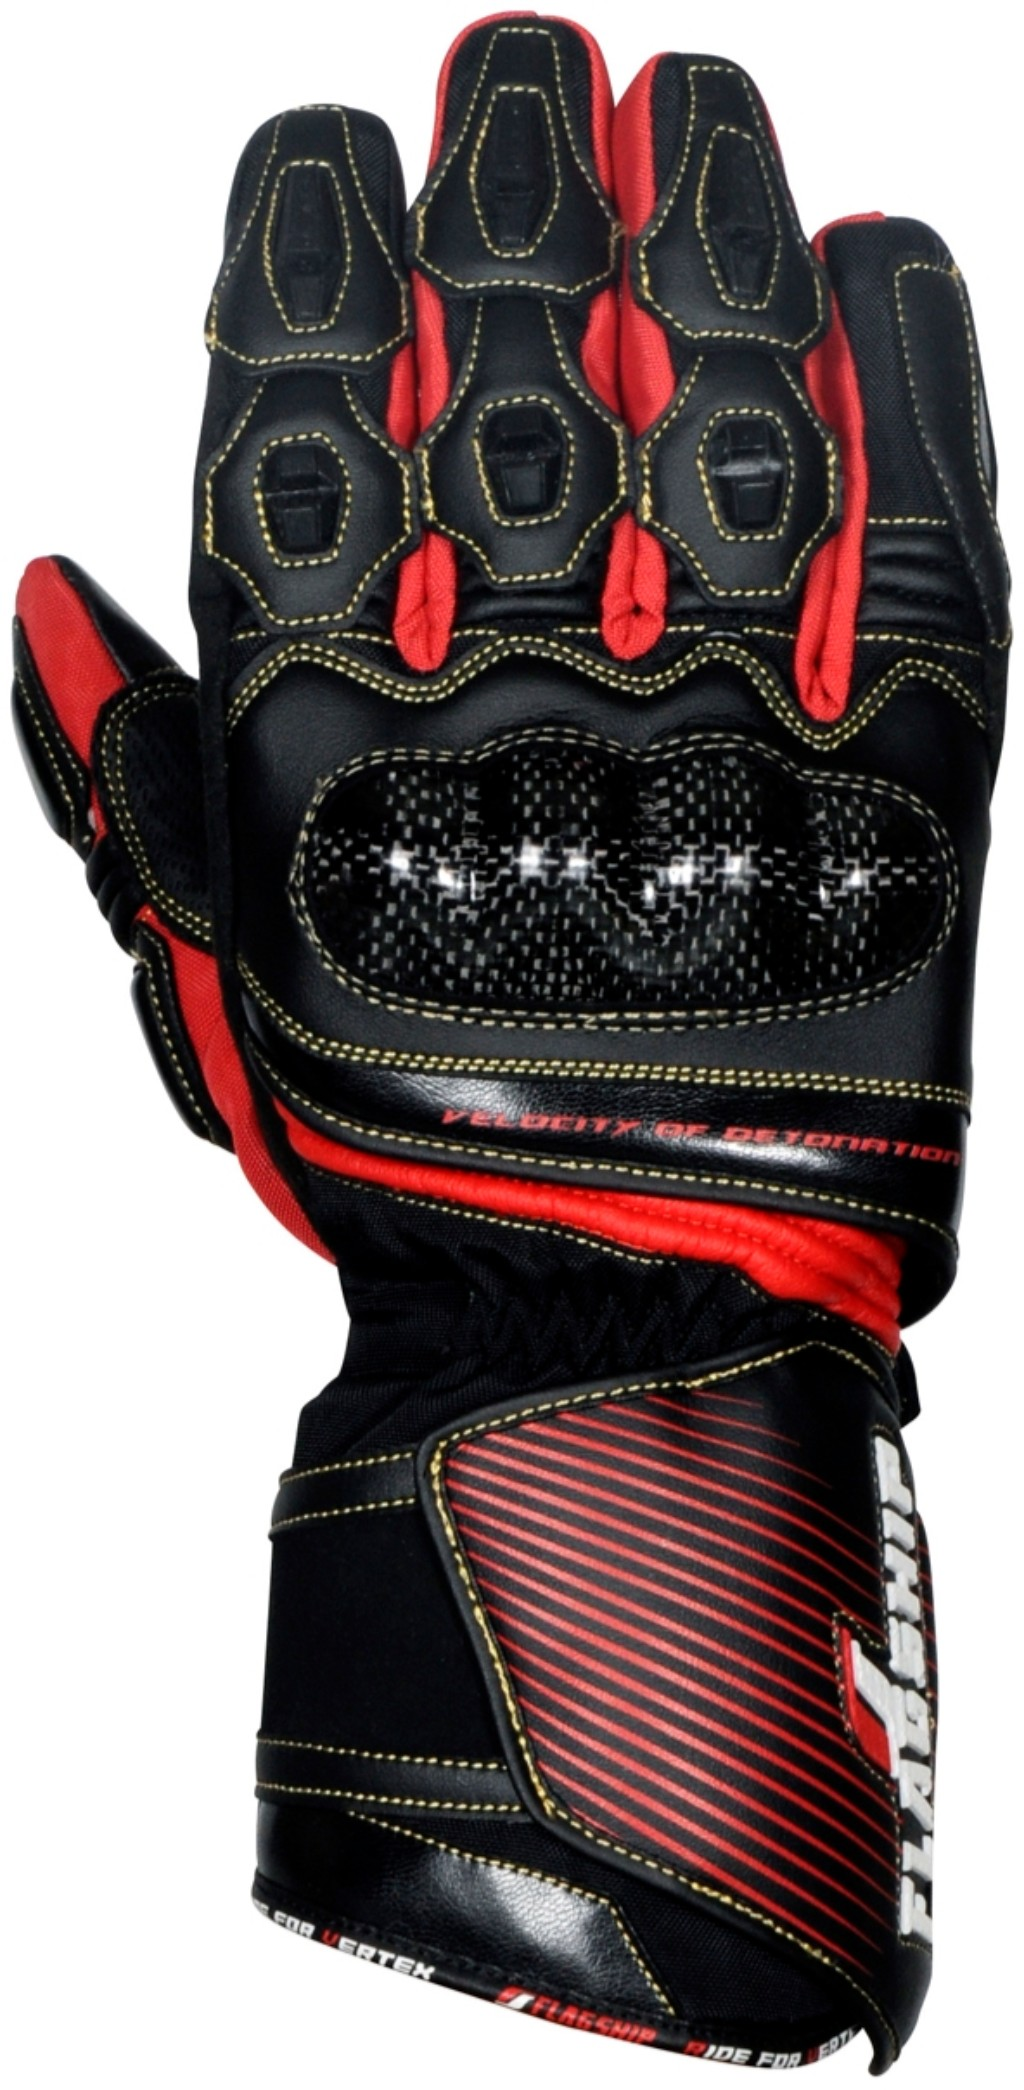 FLAGSHIP フラグシップDefend Carbon Glove[ディフェンドカーボングローブ]